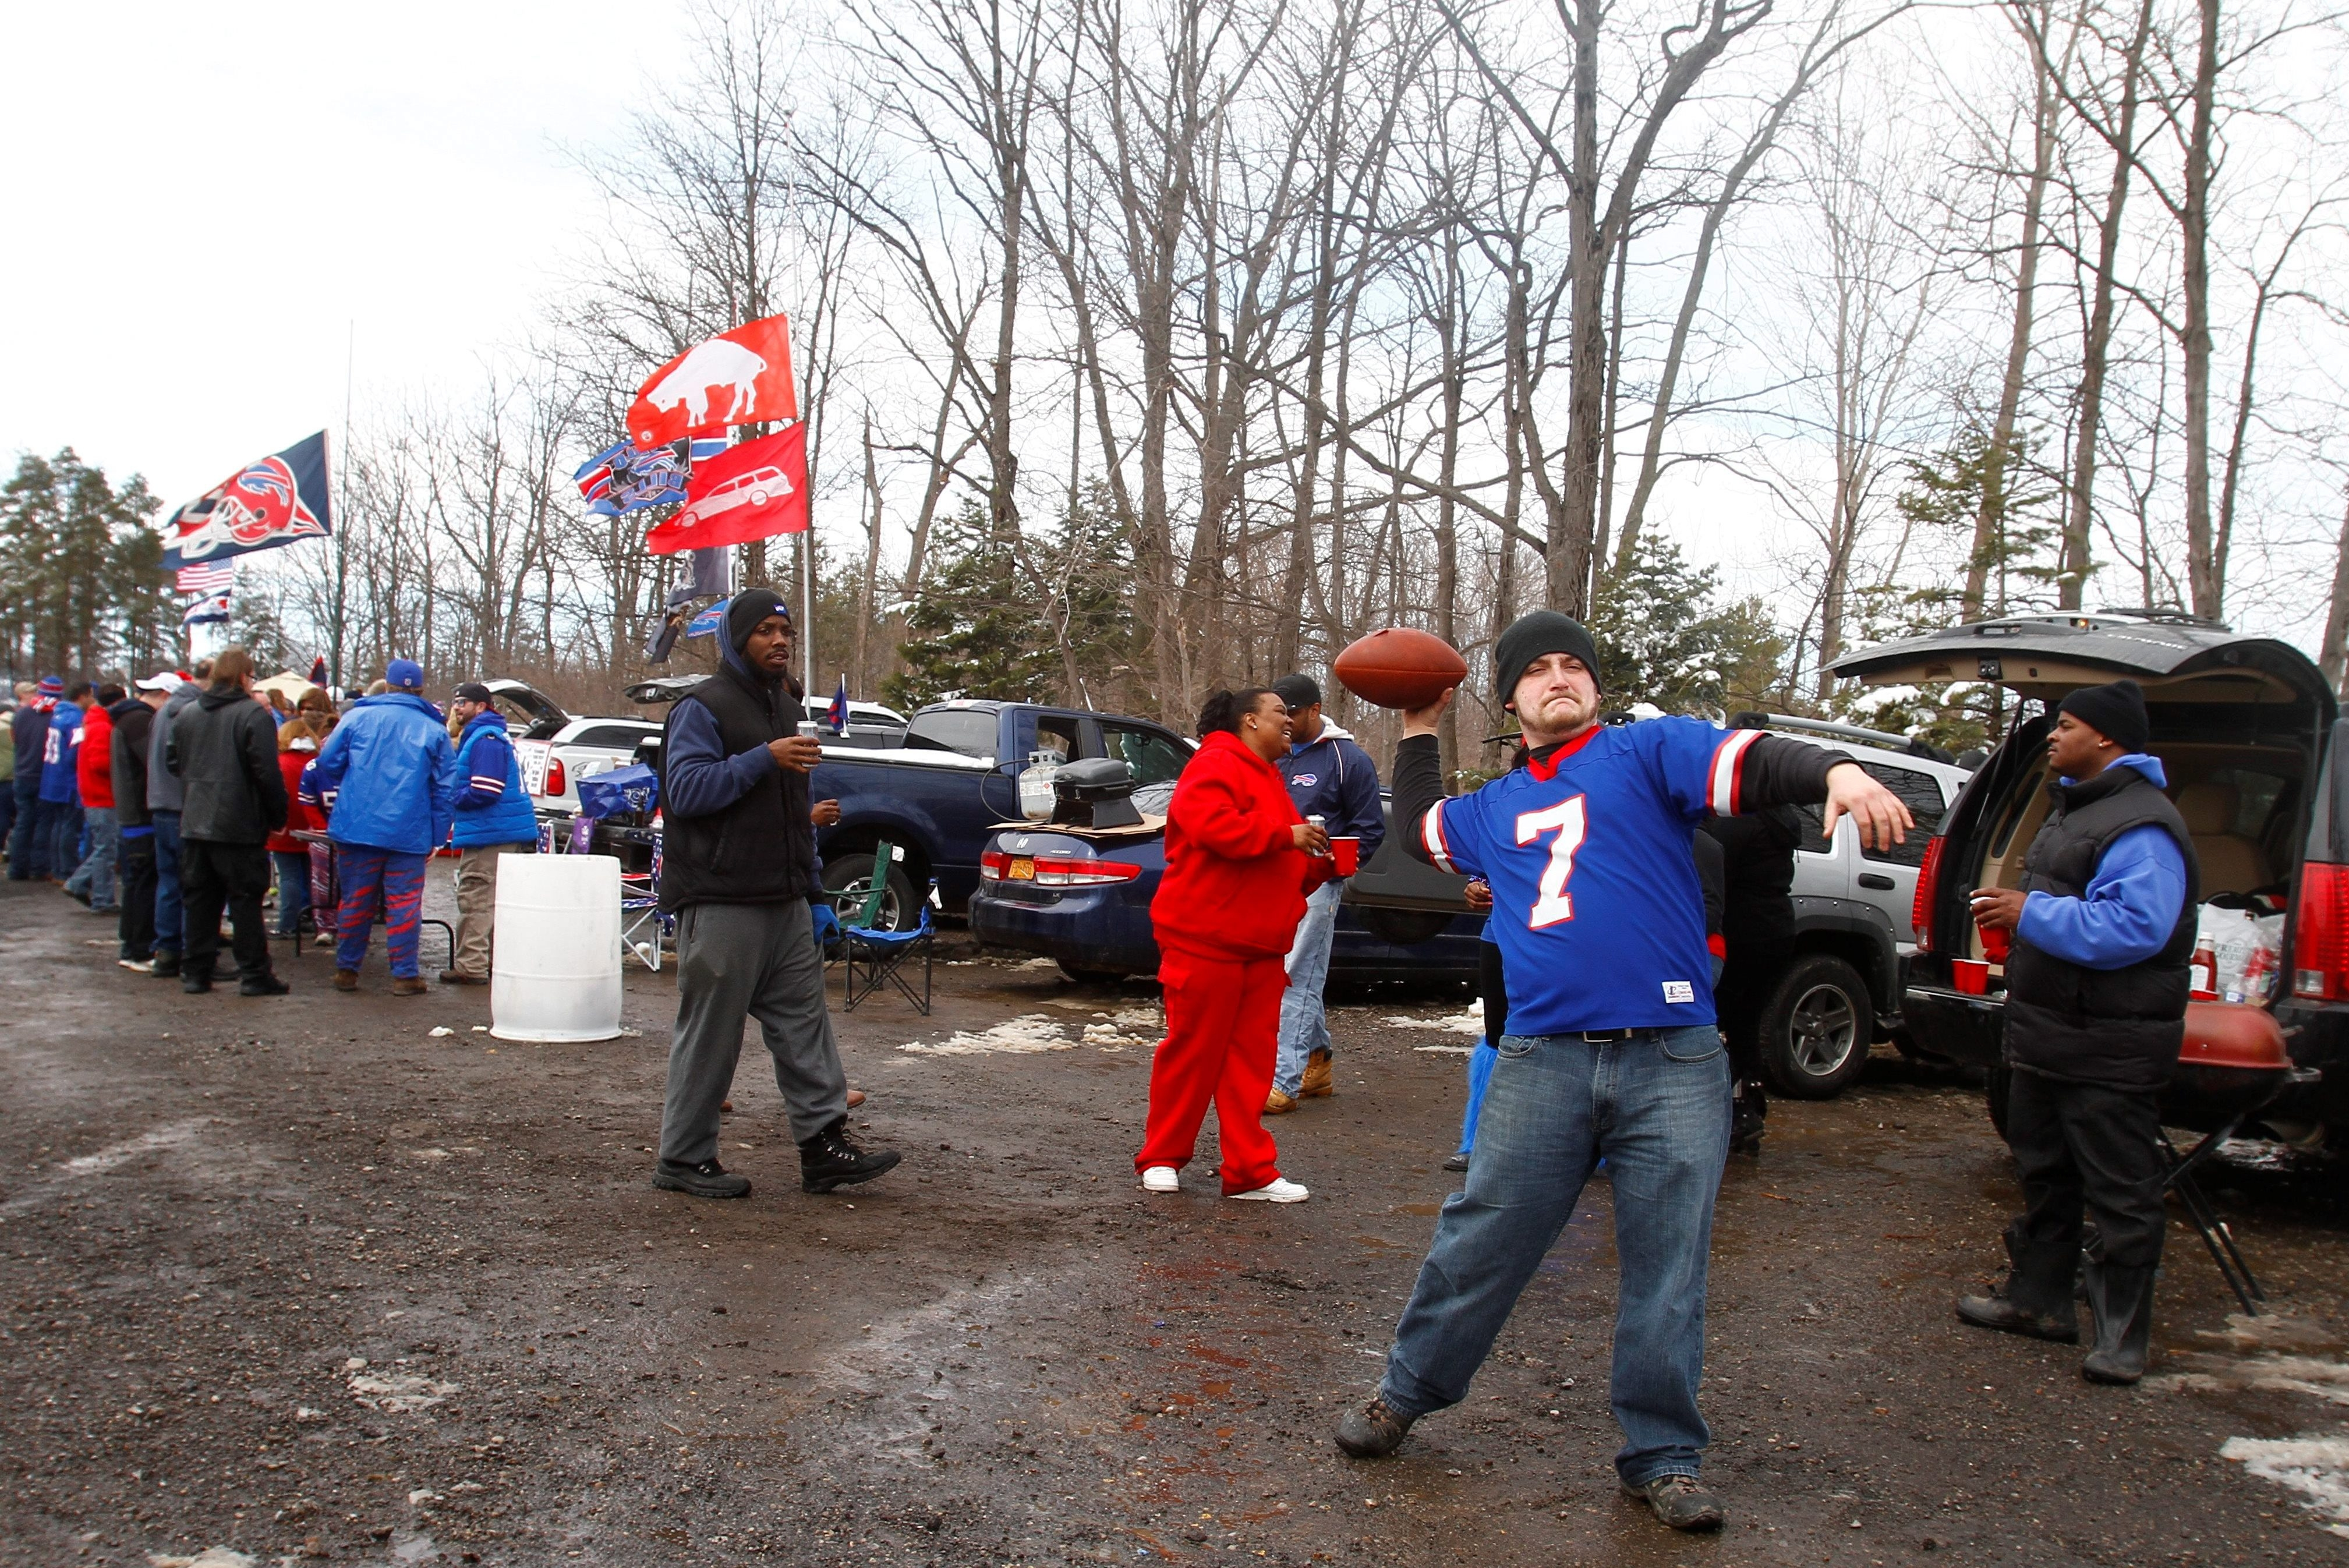 Bills fans throw the football and play catch in a parking lot on California Road in Orchard Park. (News file photo)